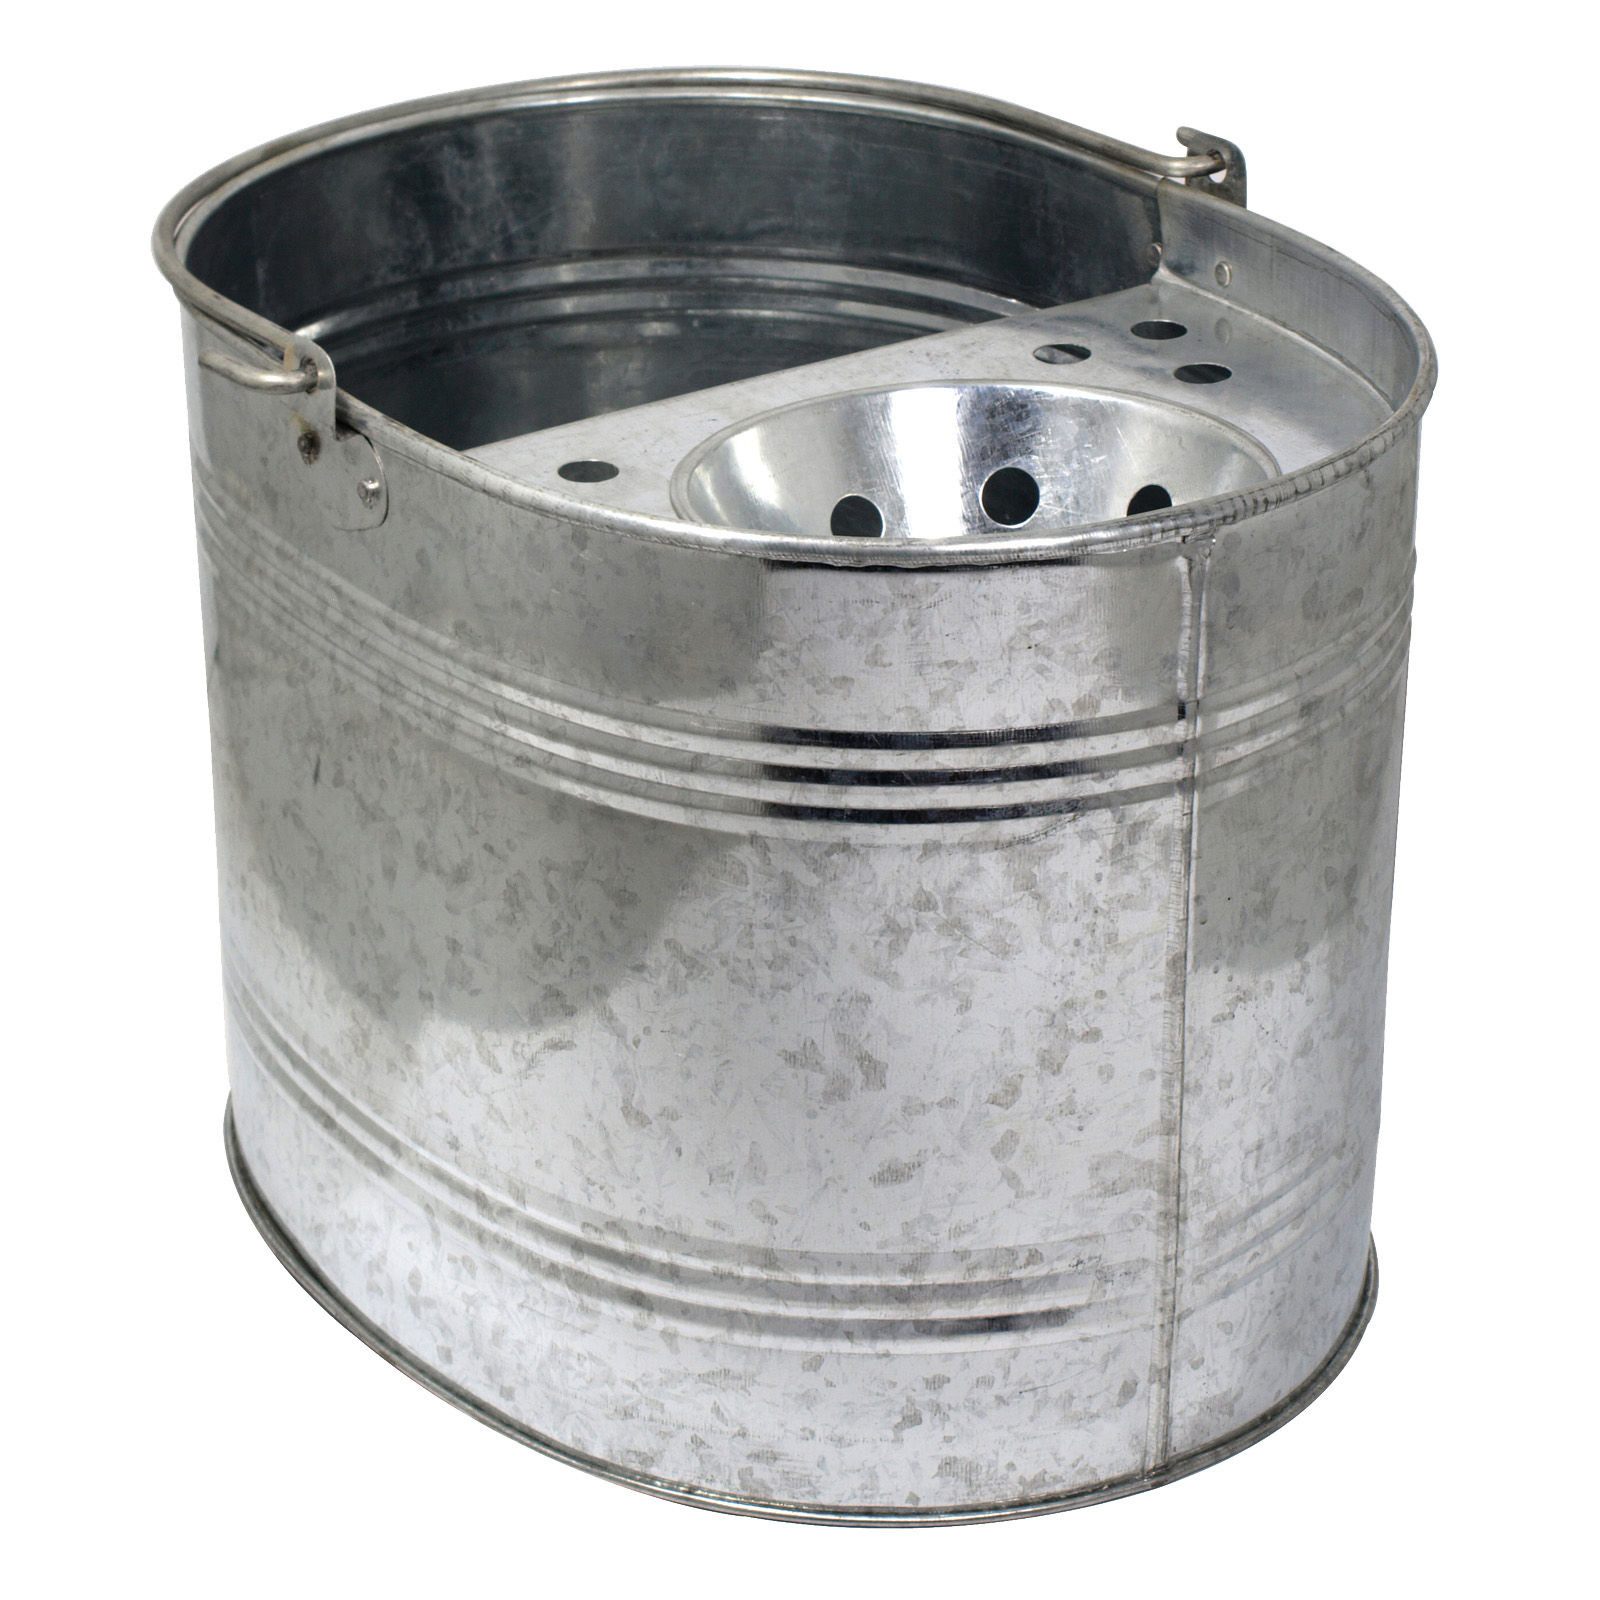 GALVANISED MOP BUCKET 7L